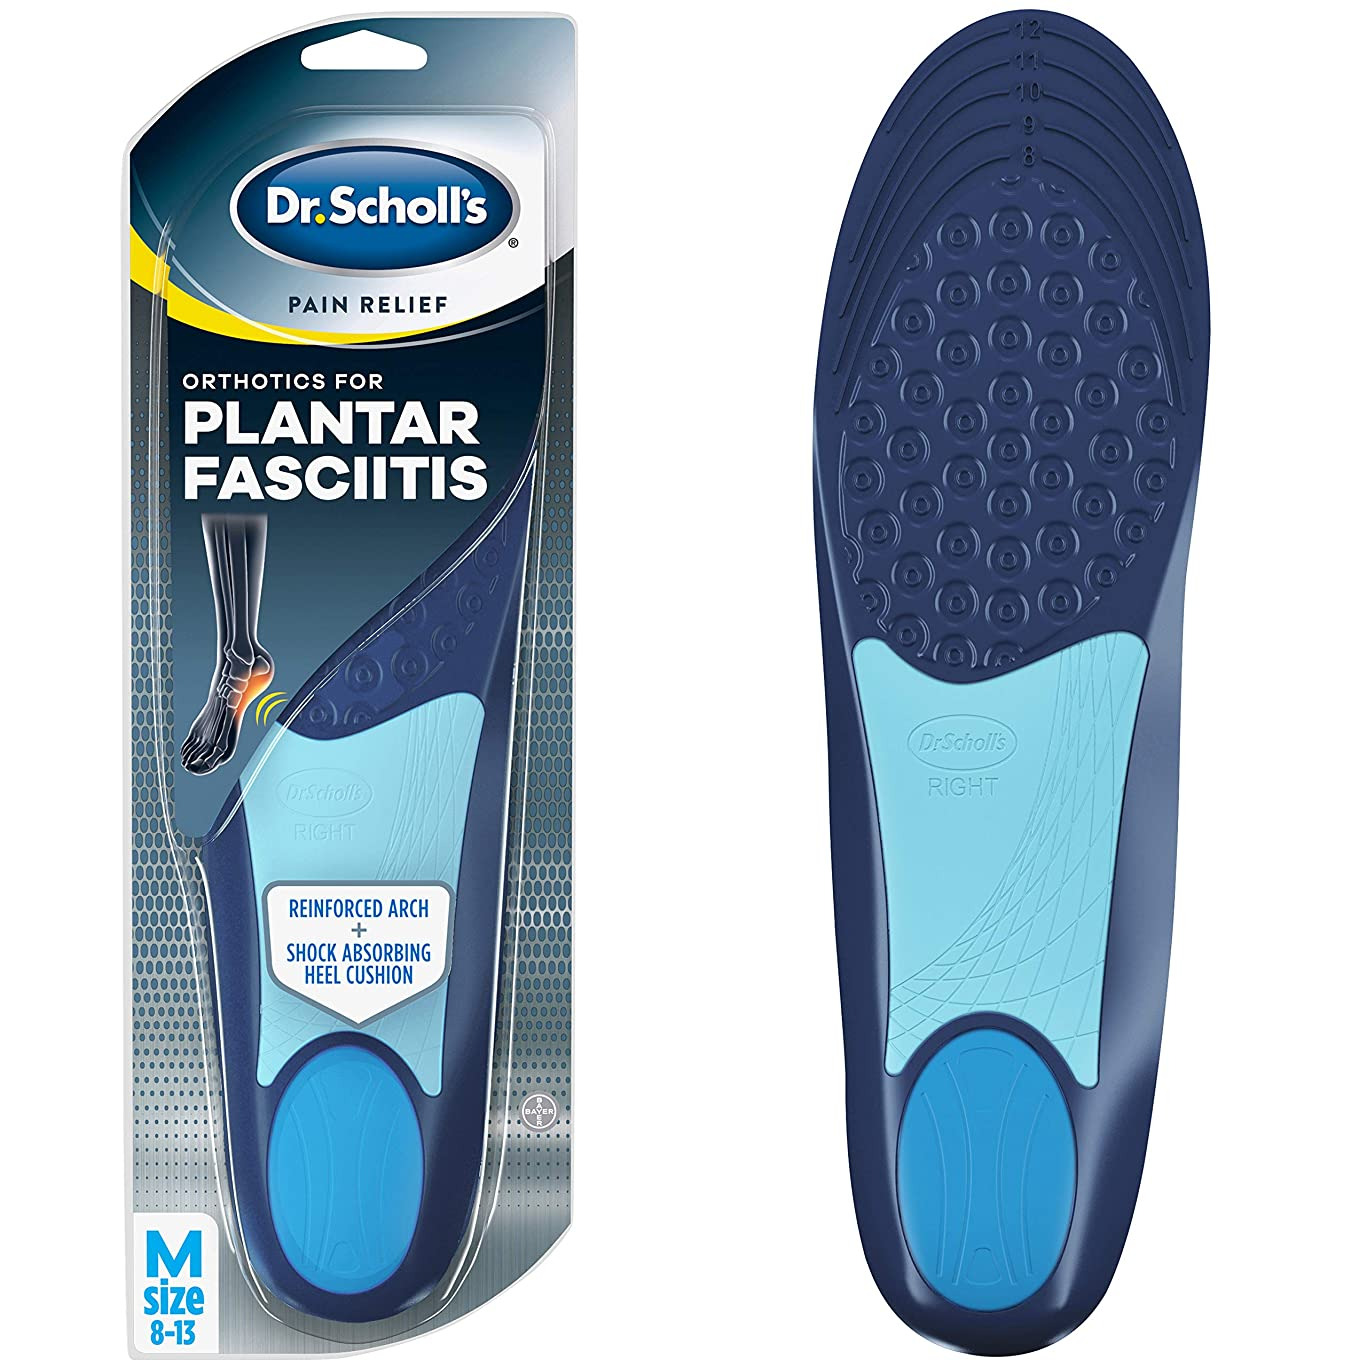 Dr. Scholl's PLANTAR FASCIITIS Pain Relief Orthotics (Men's 8-13, Women's 6-10) // Relieve and Prevent Plantar Fasciitis Pain All Day